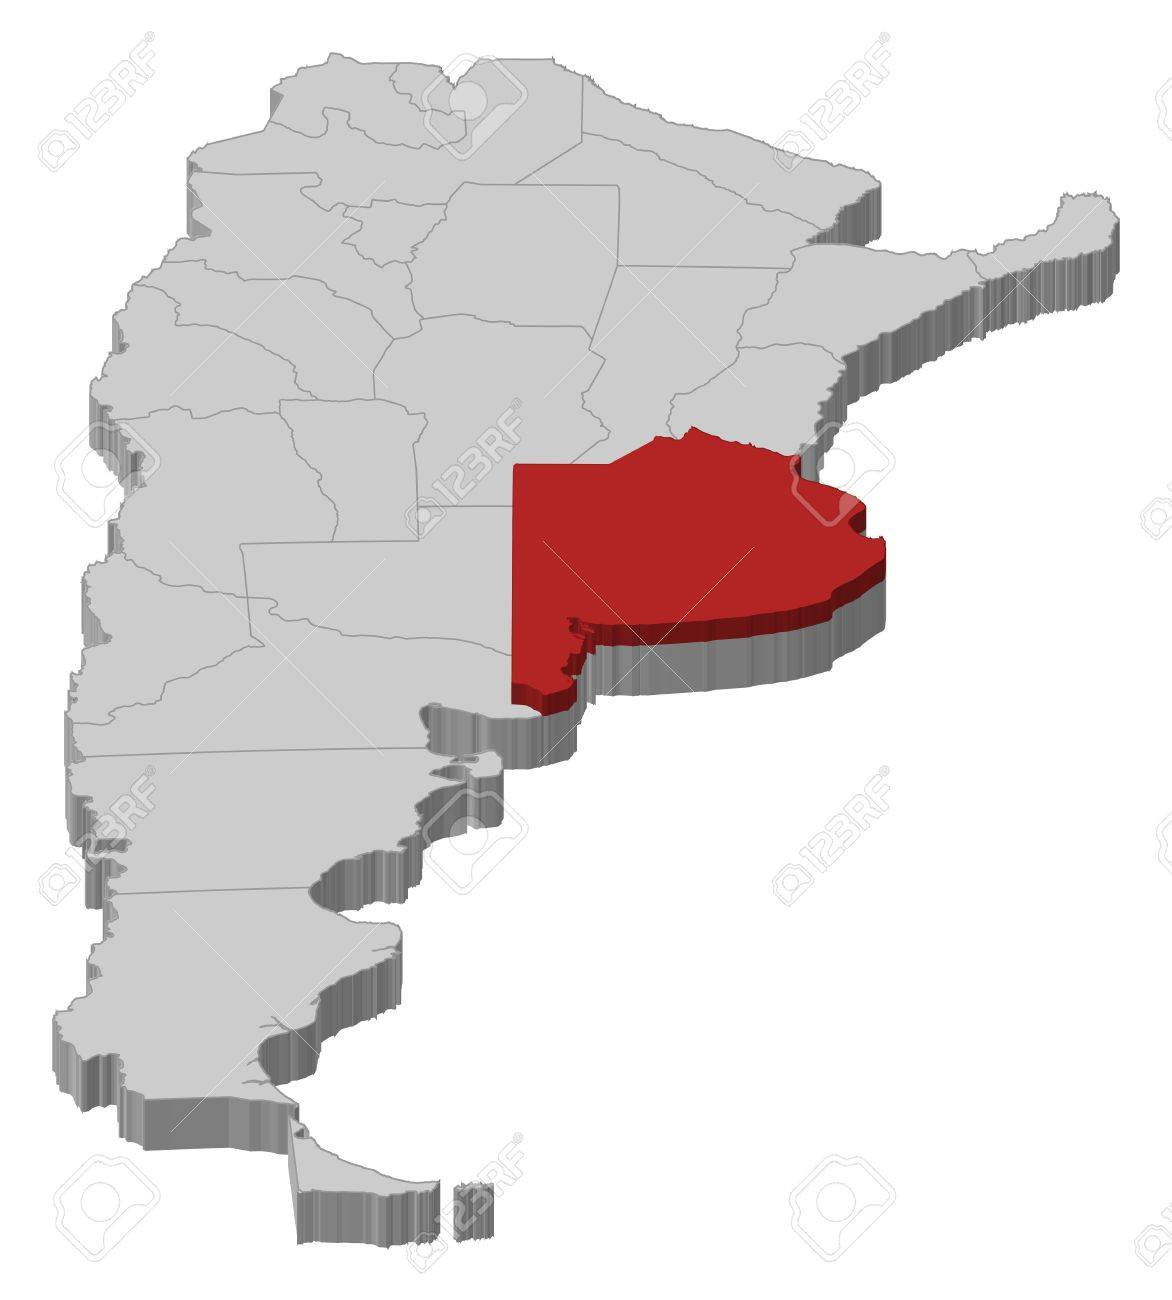 Political map of Argentina with the several provinces where Buenos Aires is highlighted. Stock Vector - 11346000